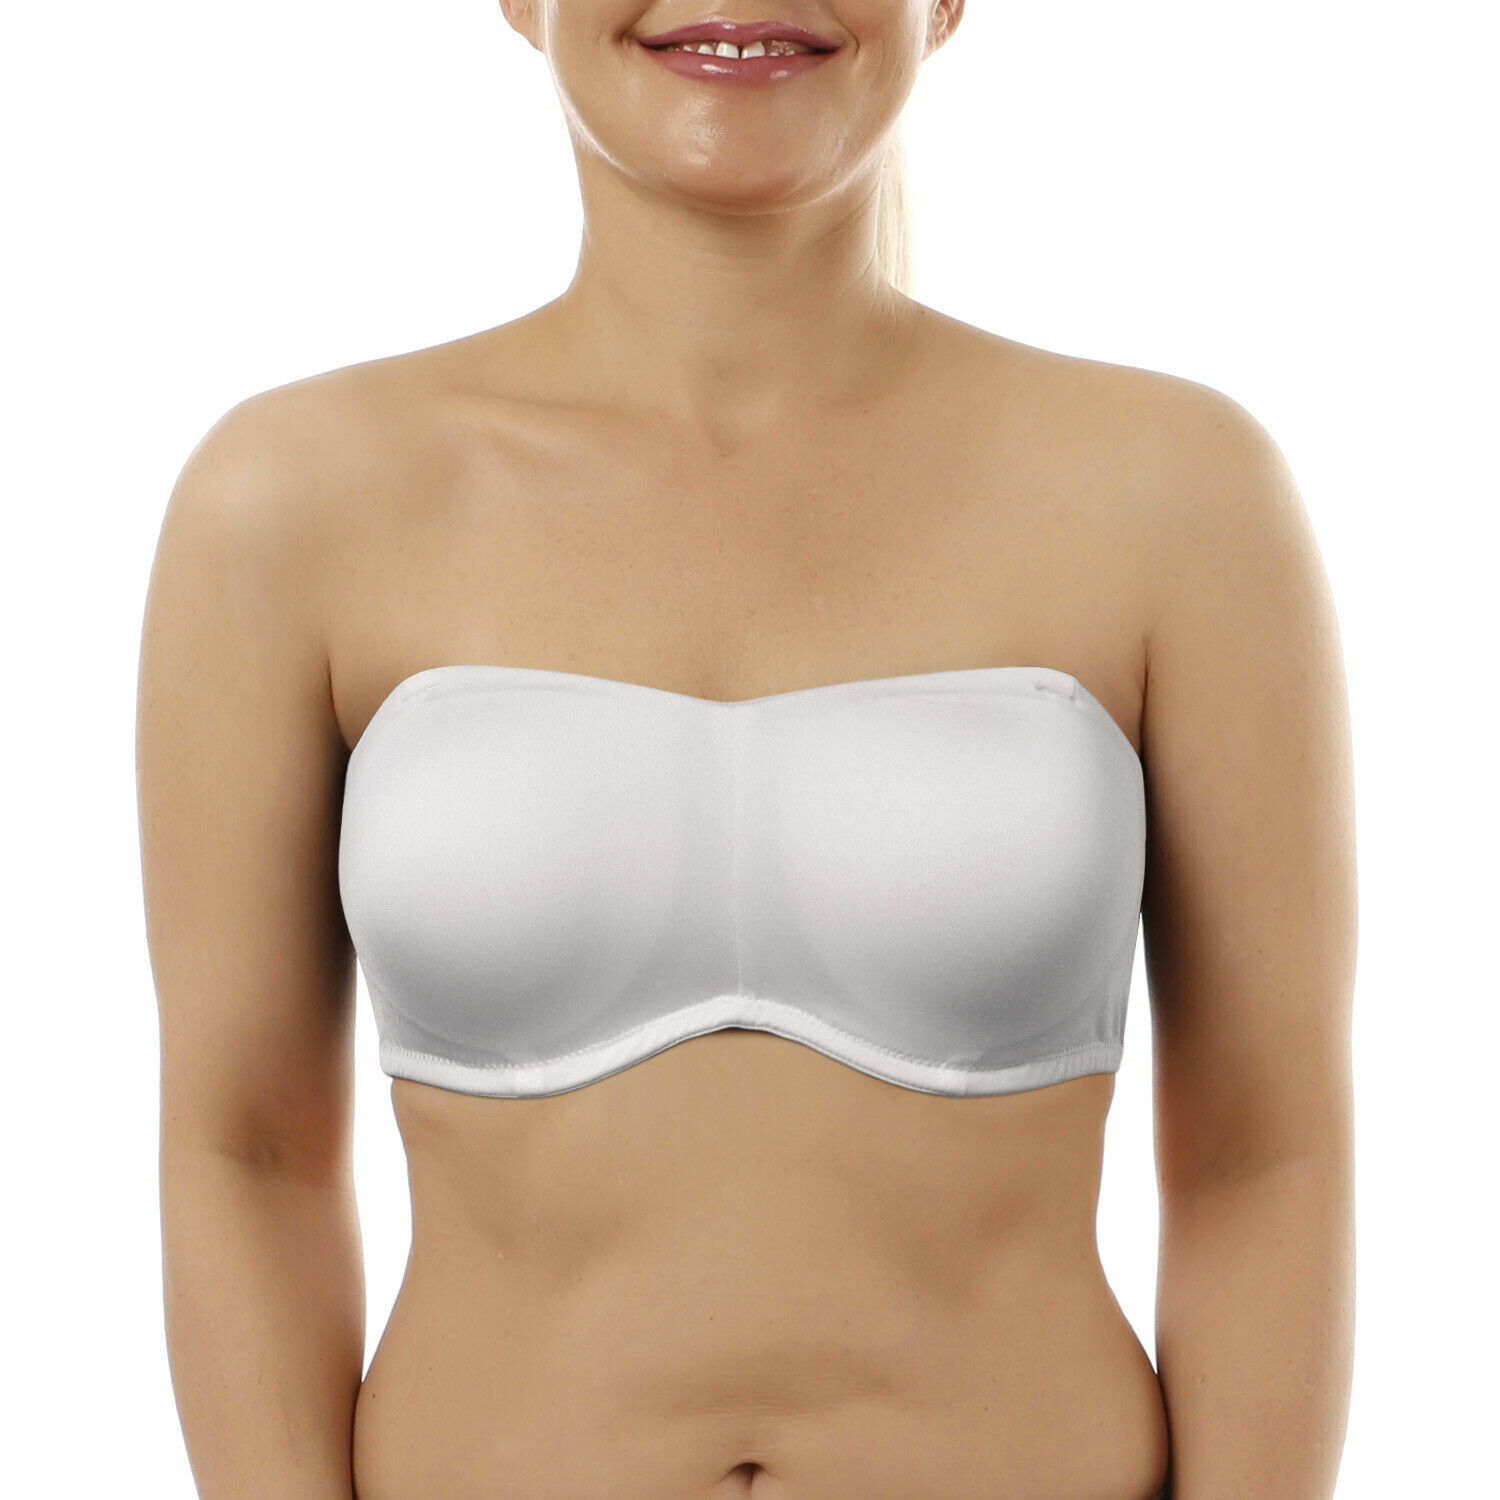 New White Soft Strapless Bras Adjusted Silicone Strength Quality Bra Padded Bone A B C D DD DDD E F G 32 34 36 38 40 42 44 46 48